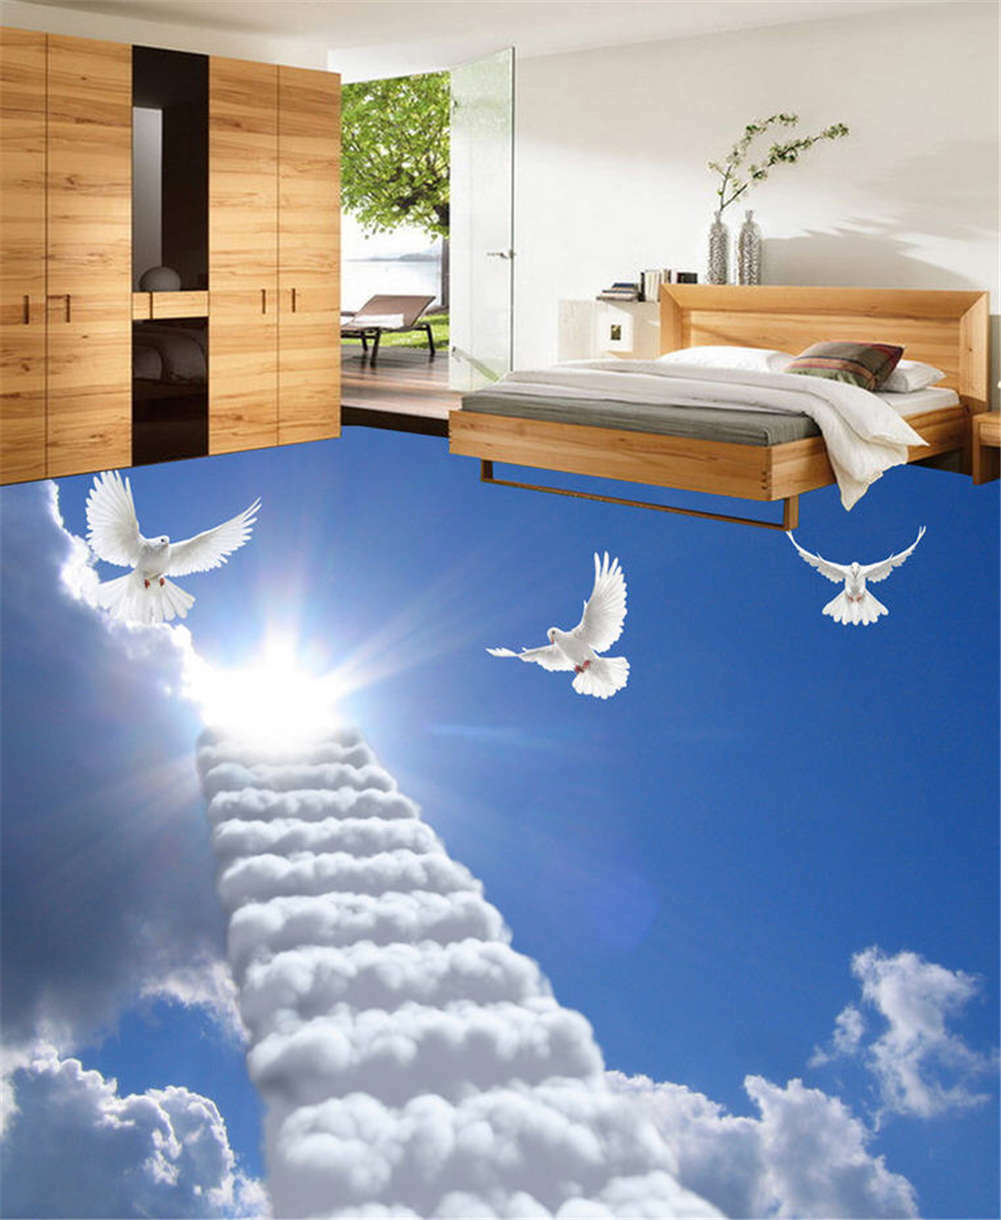 Skywards Ladder 3D Floor Mural Photo Flooring Wallpaper Home Print Decoration